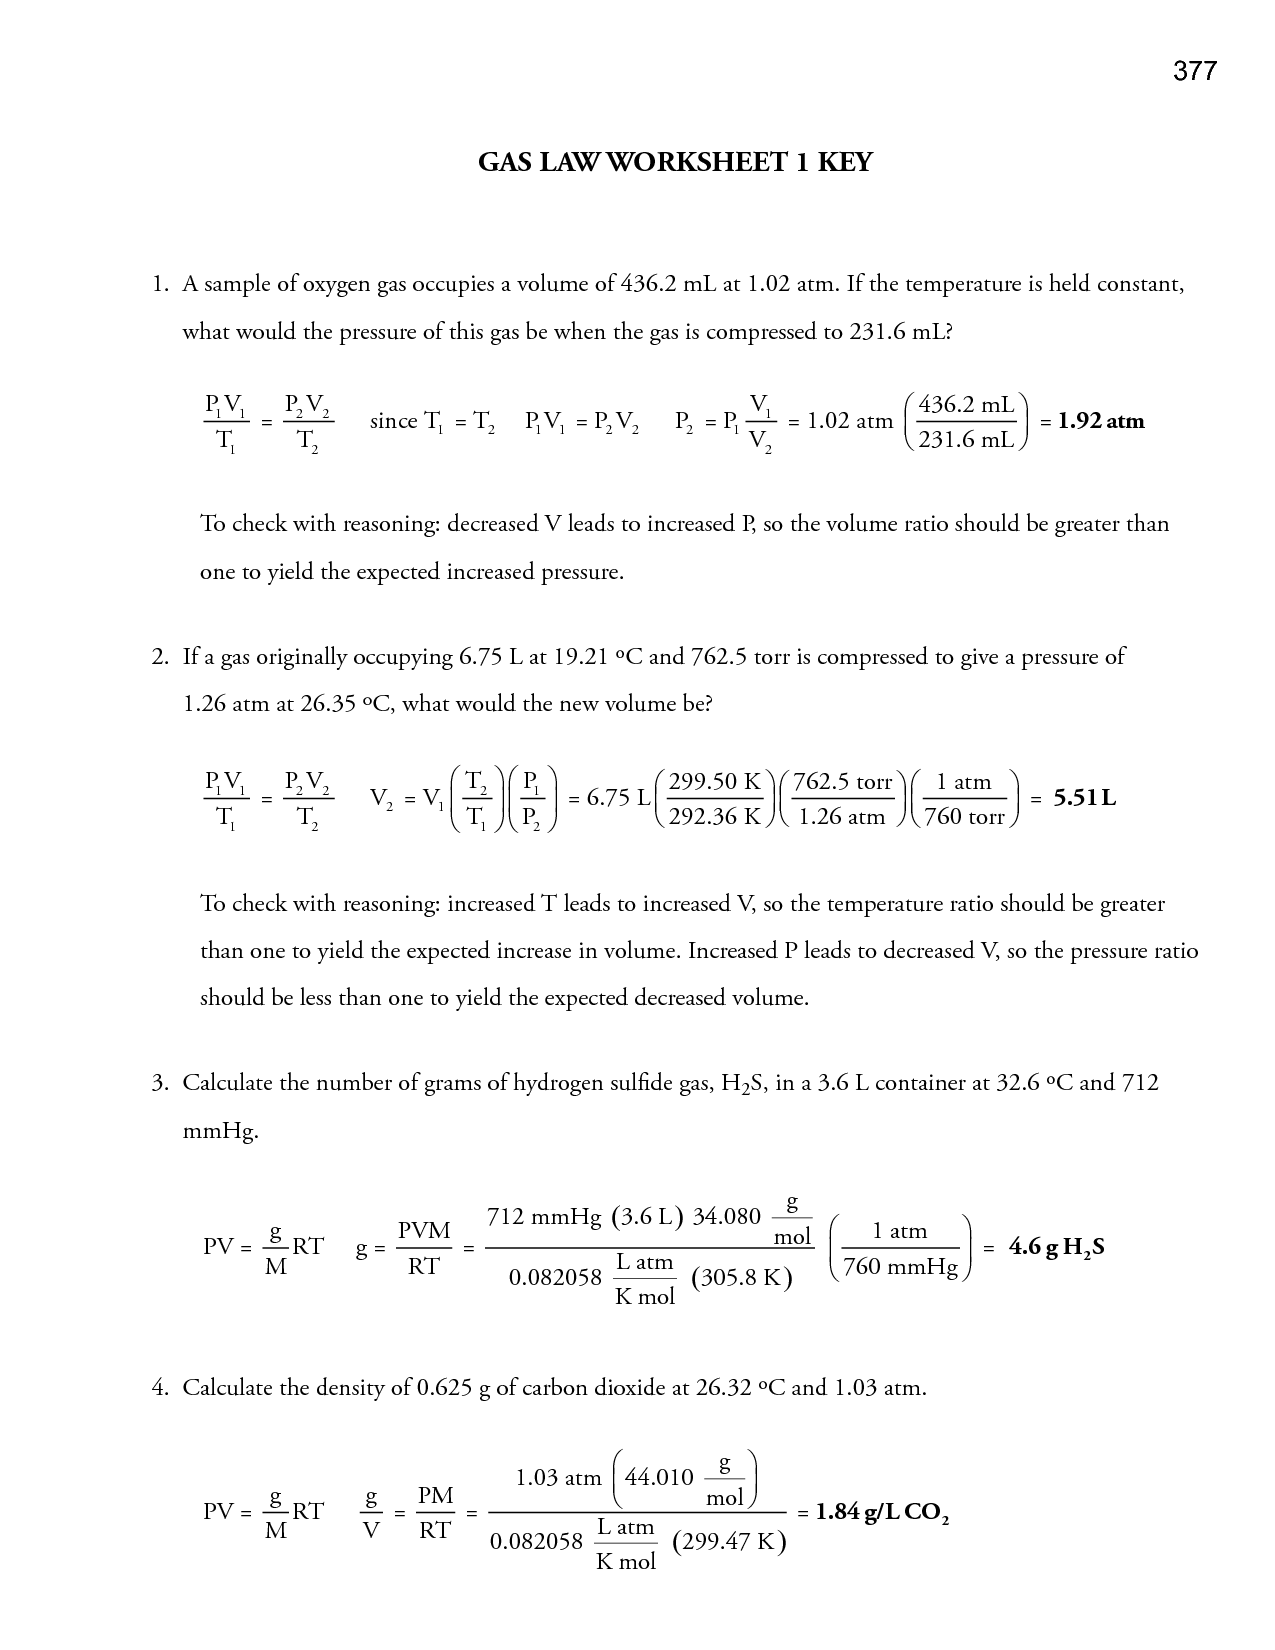 19 Best Images of Which Law Worksheet Answers  Gas Laws Worksheet Answer Key, Ohms Law